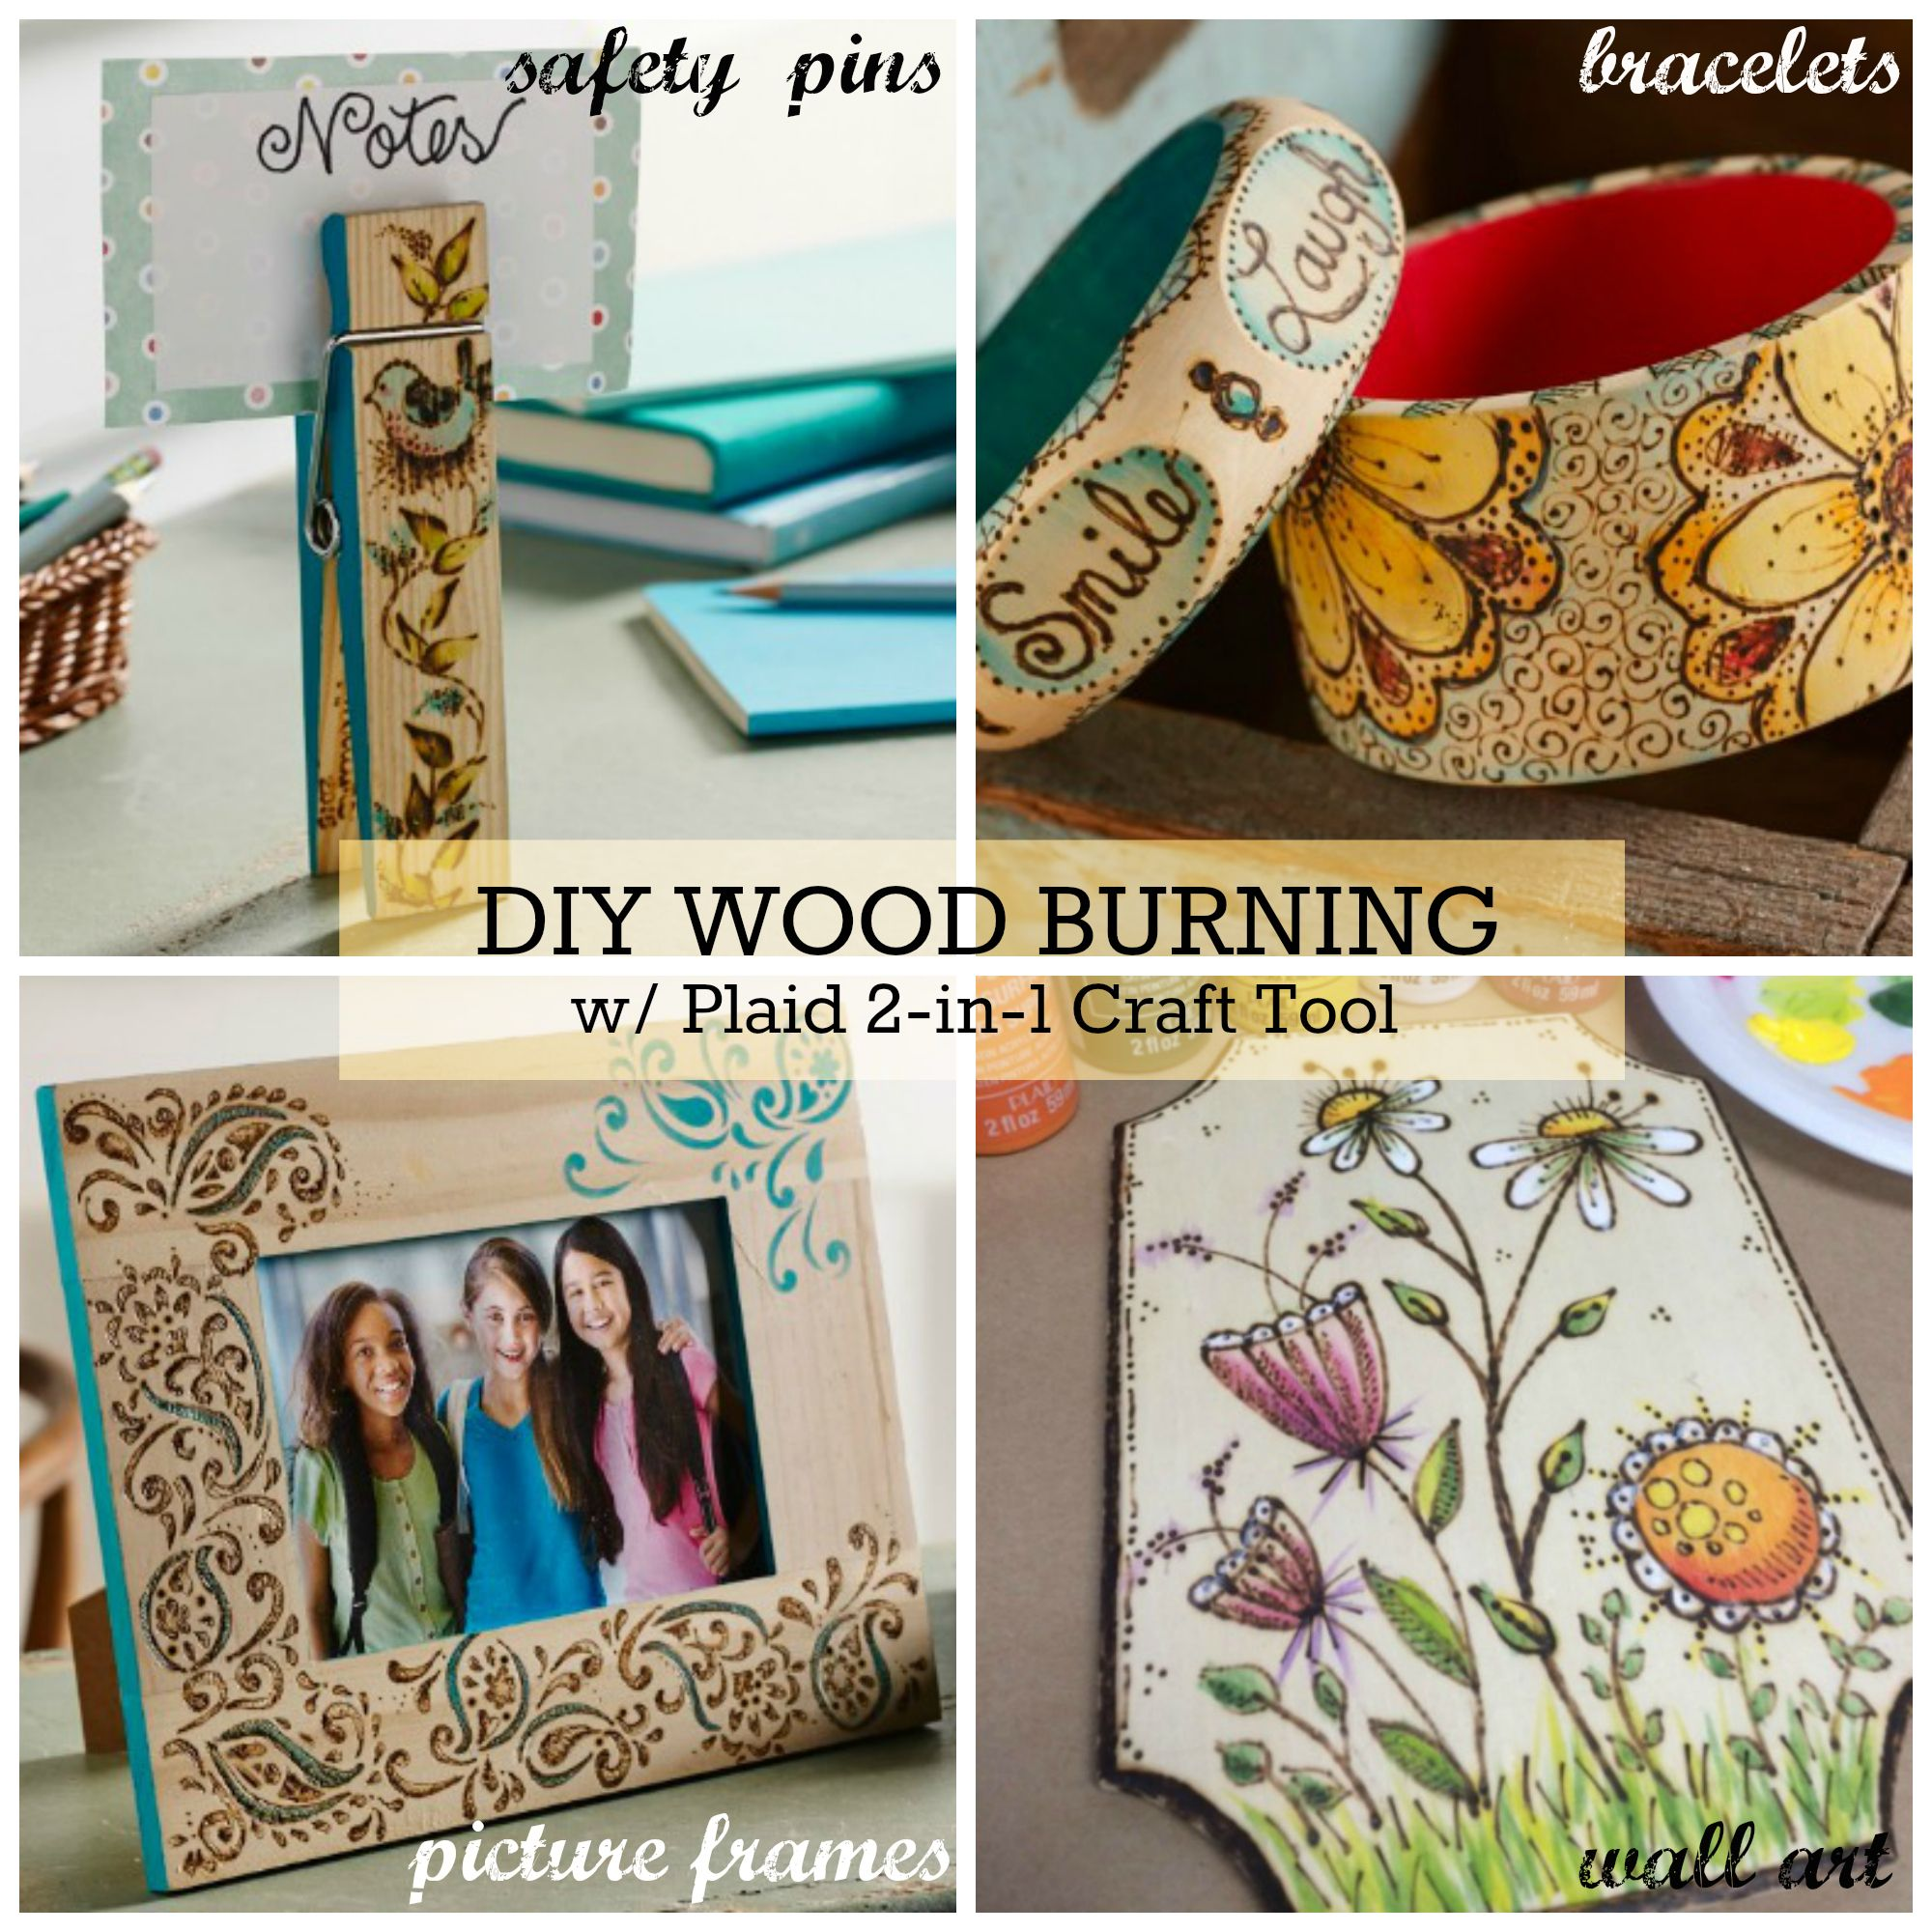 DIY Wood Burning How To Tips and